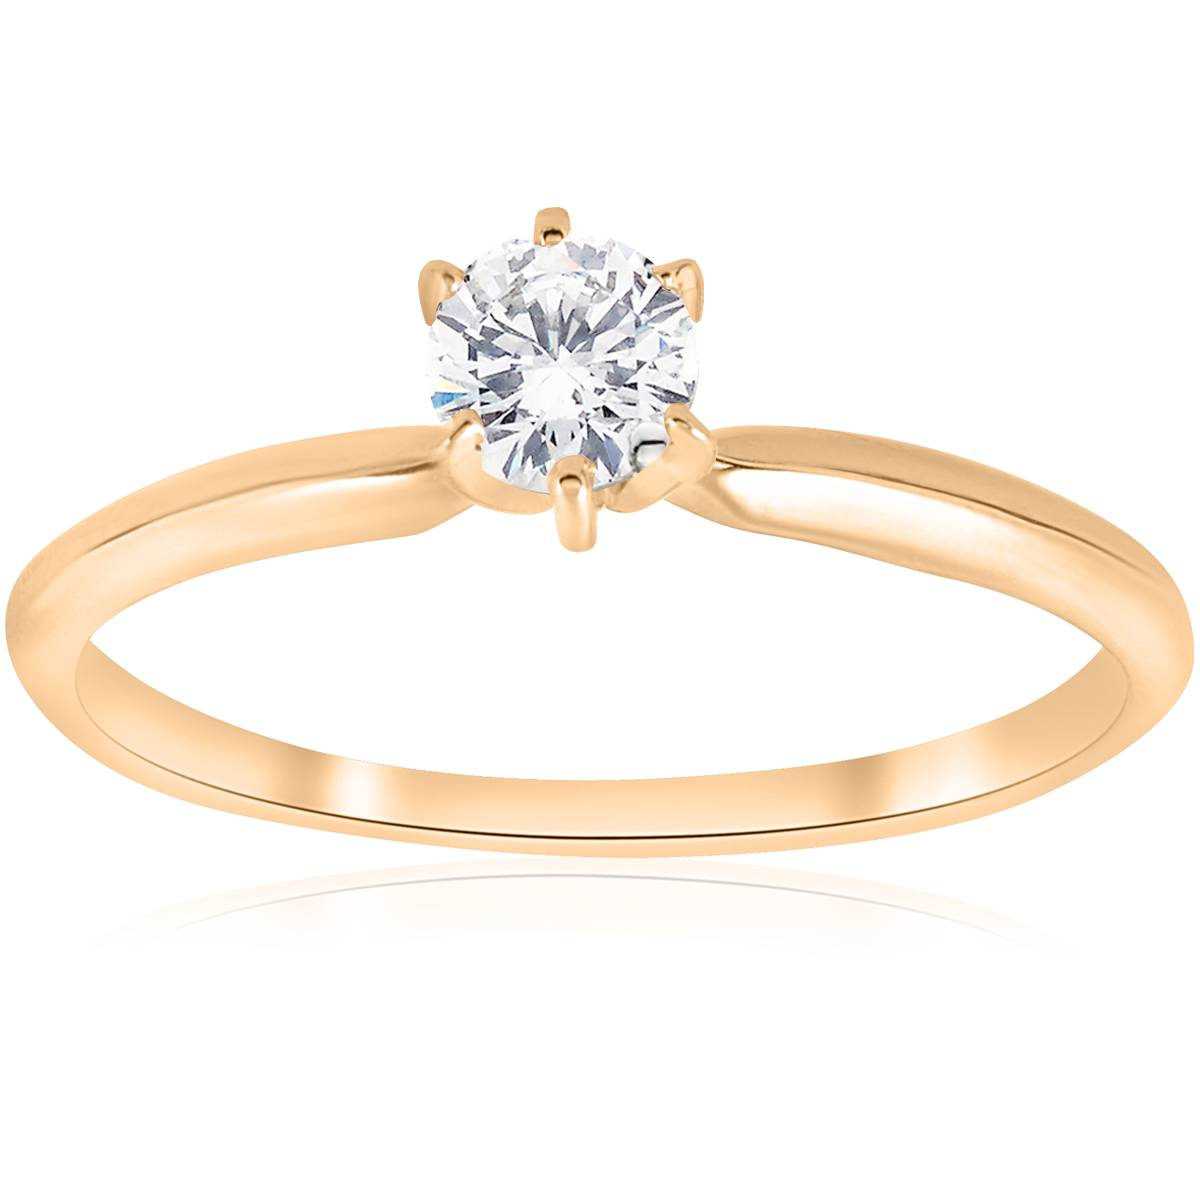 14k Yellow Gold 1/4ct Round Diamond Solitaire Engagement ...